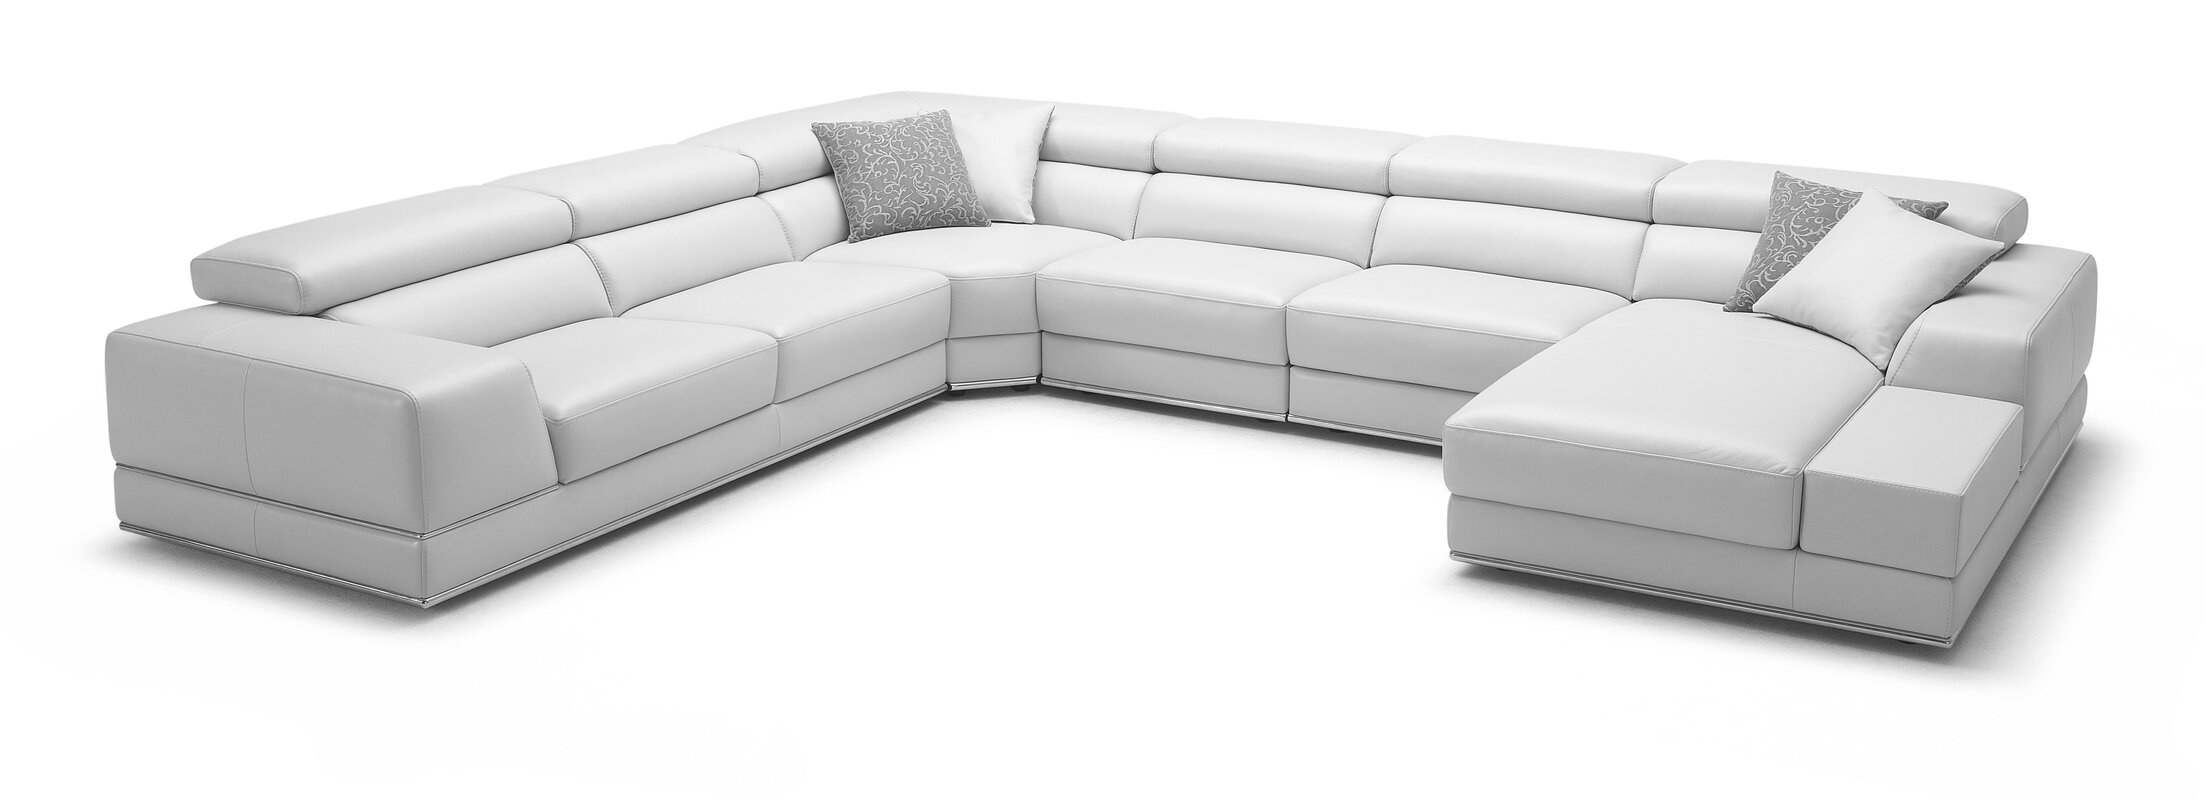 Leather Sectional  sc 1 st  AllModern : modani sectional - Sectionals, Sofas & Couches